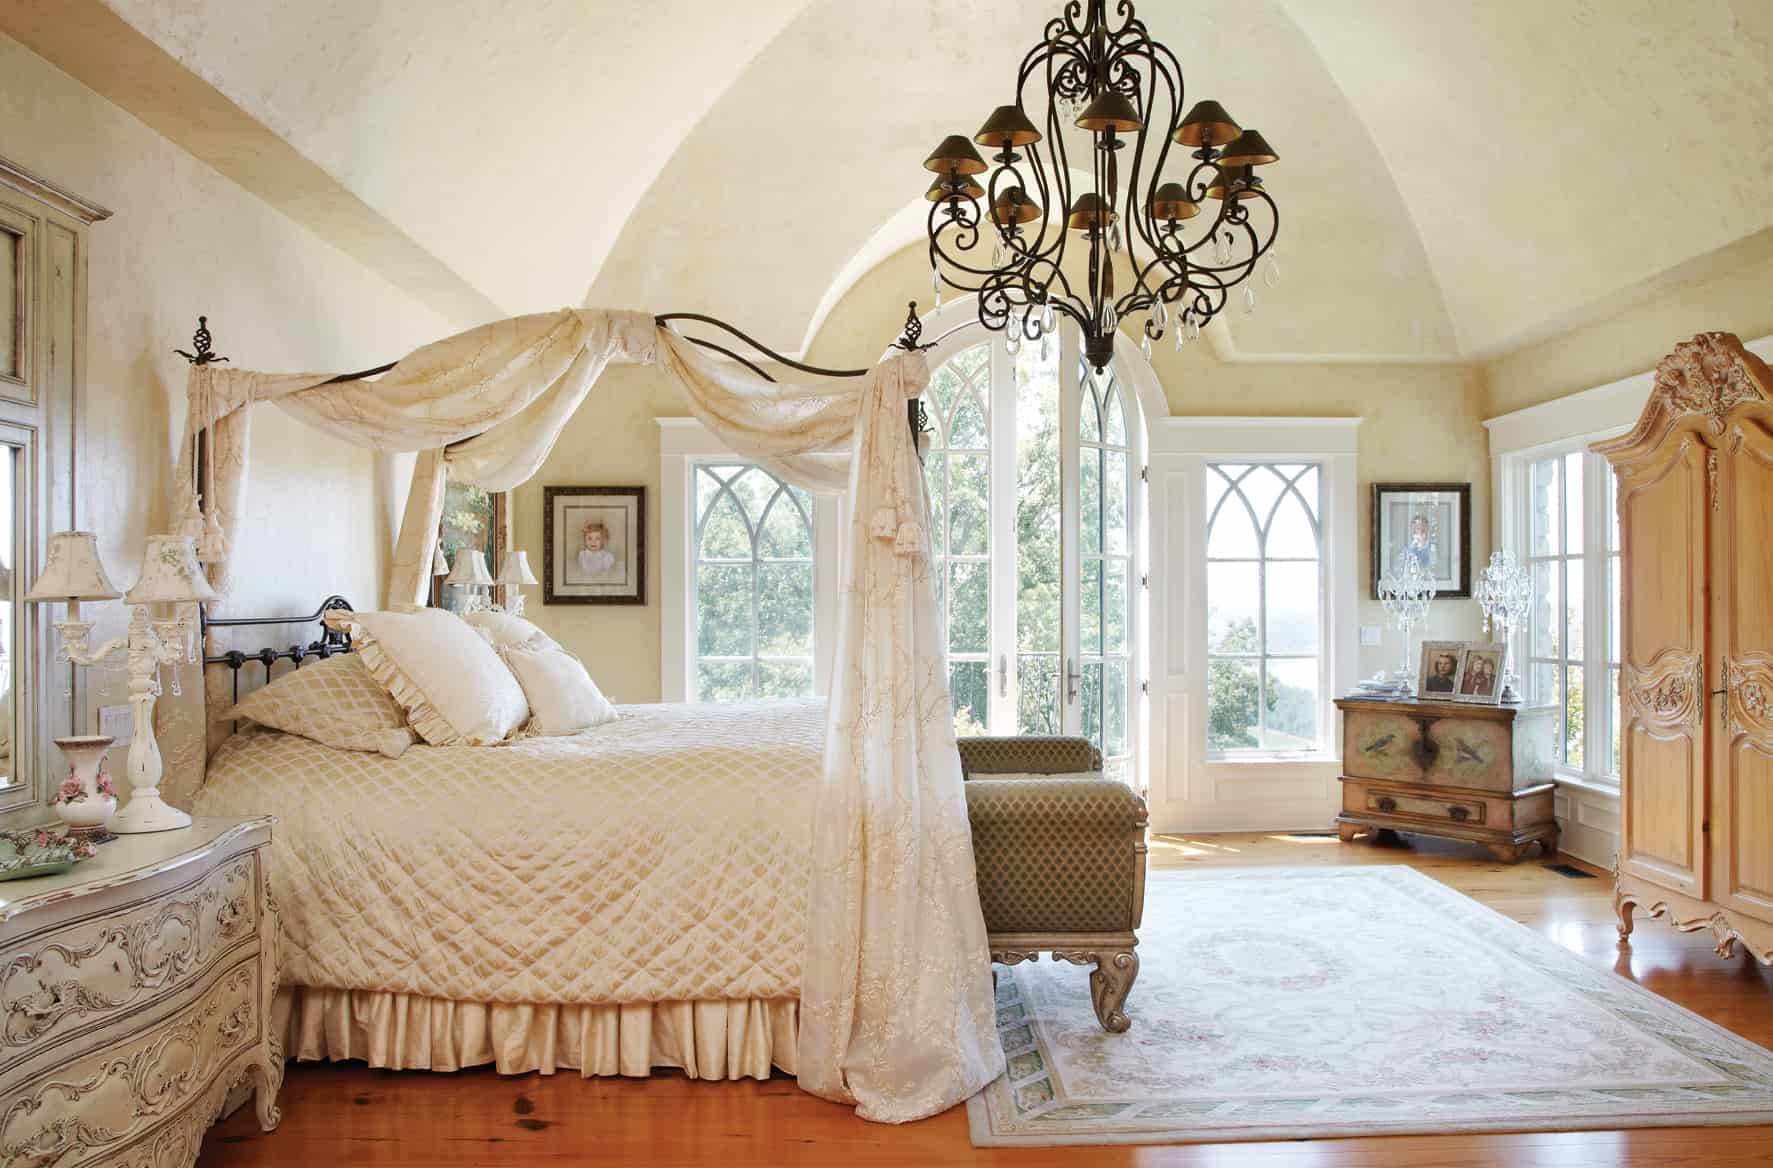 There is something very regal about a canopy bed.